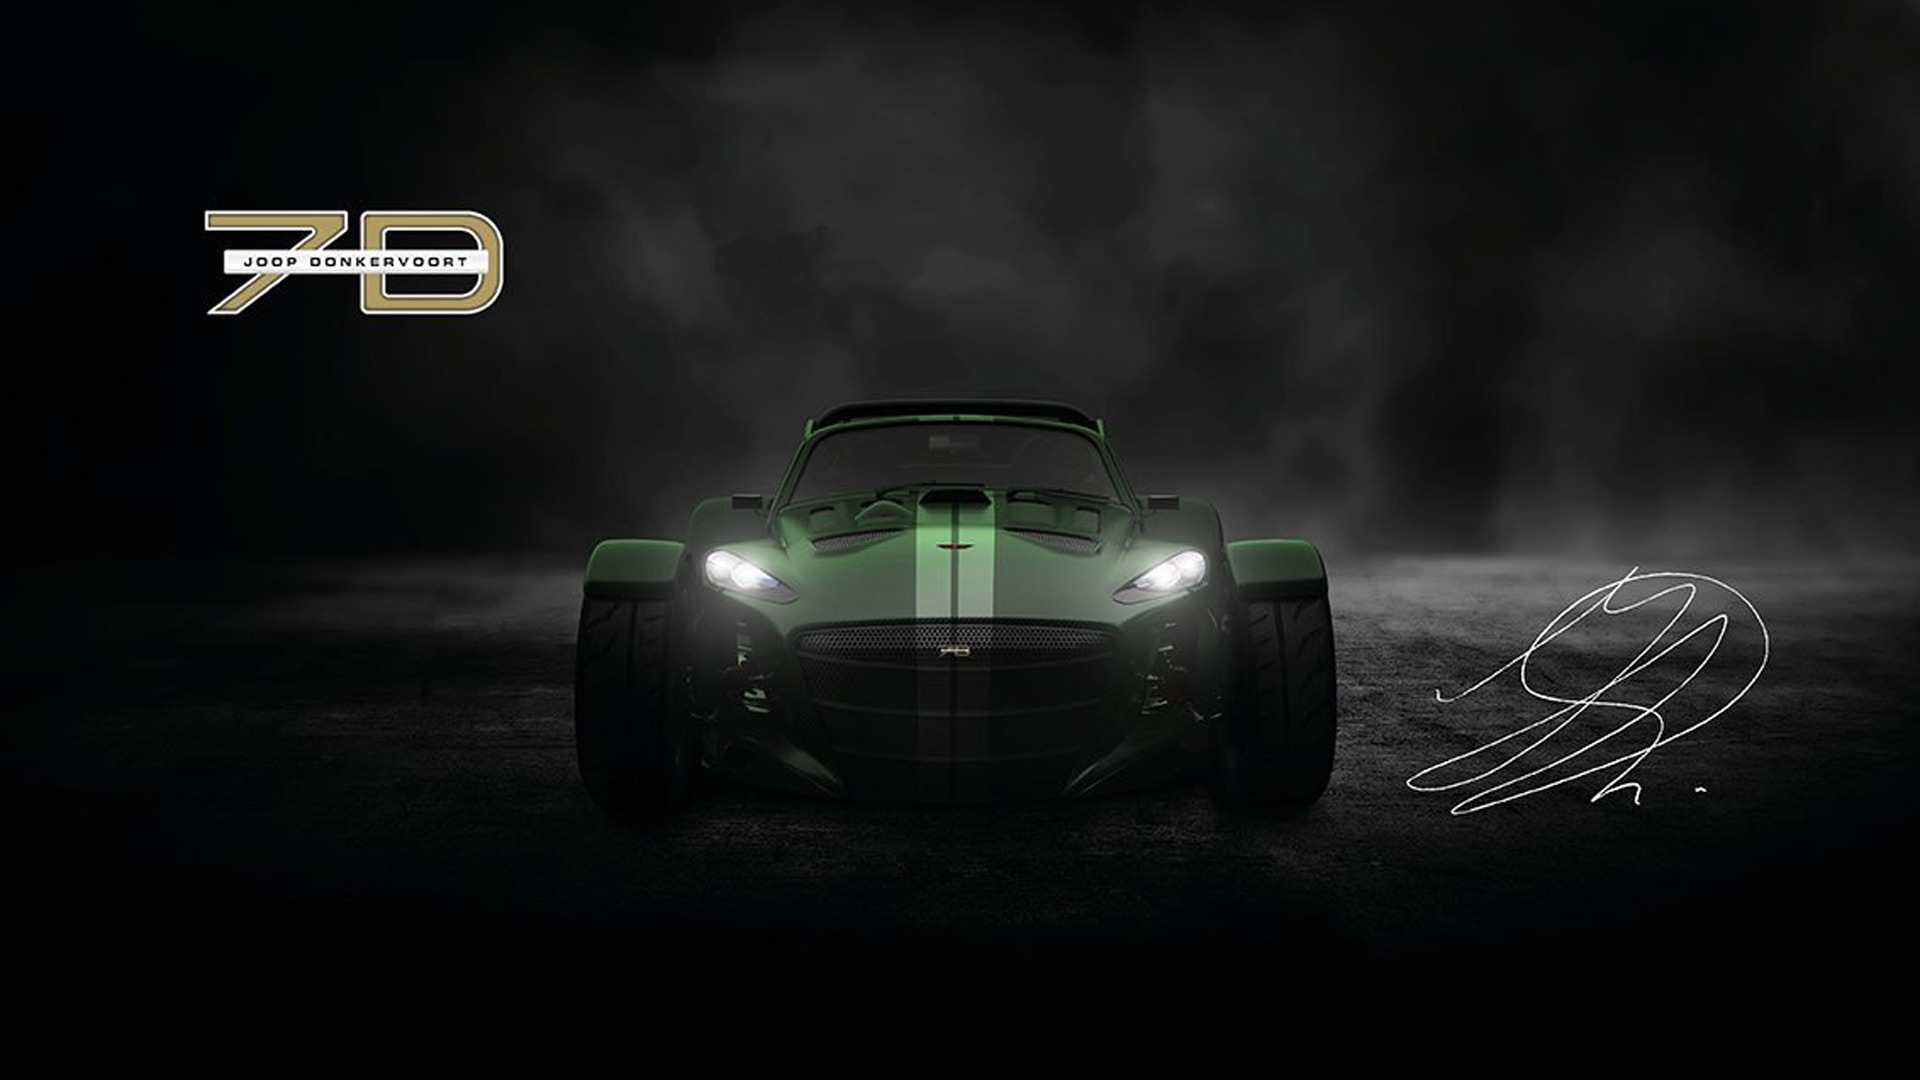 2020 Donkervoort D8 GTO JD70